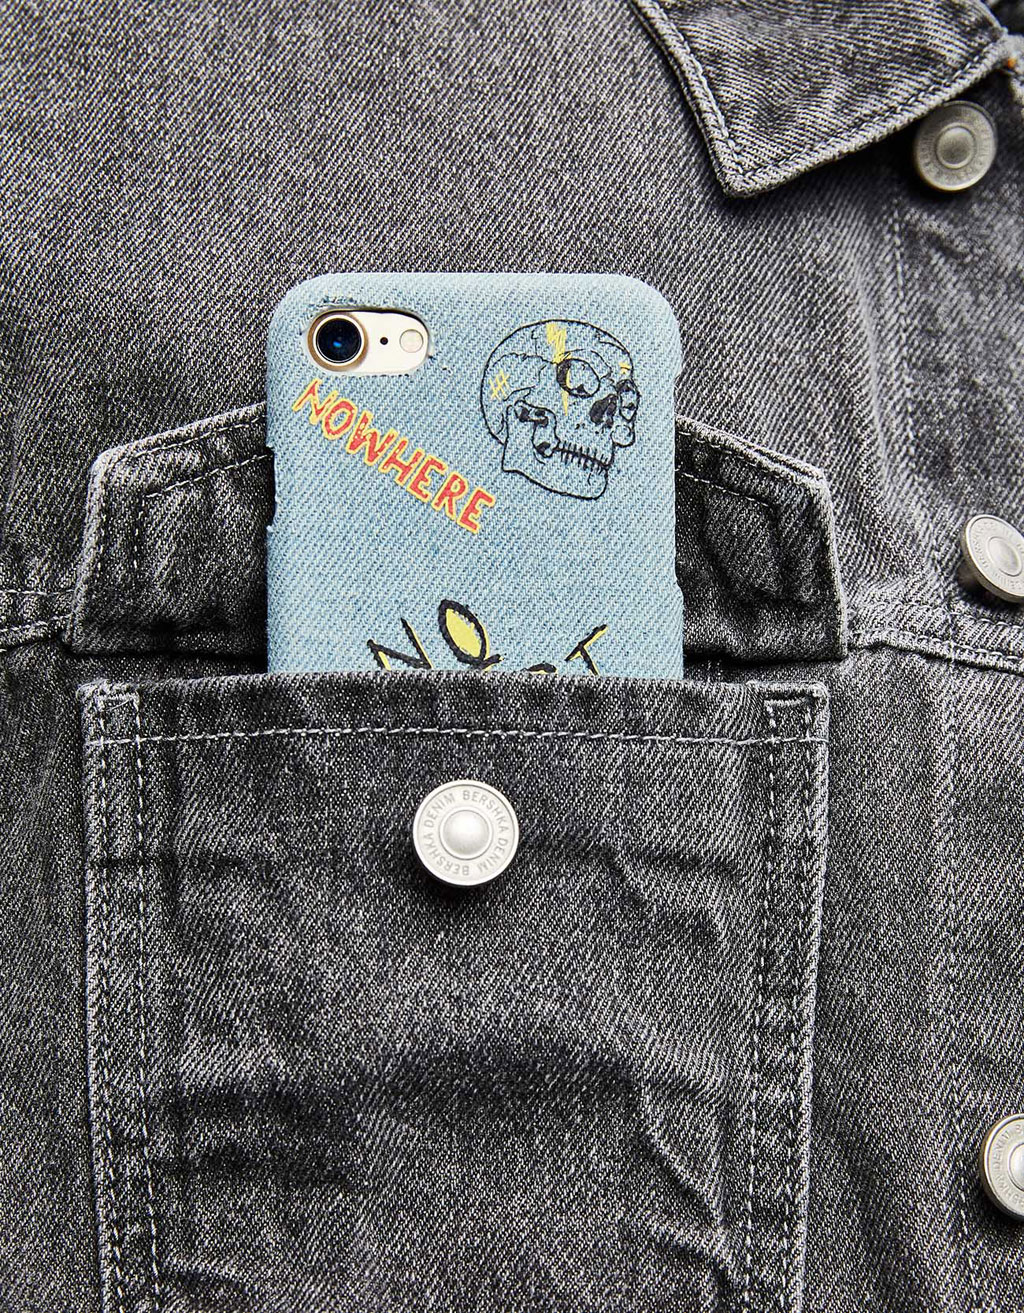 Coque denim iPhone 7